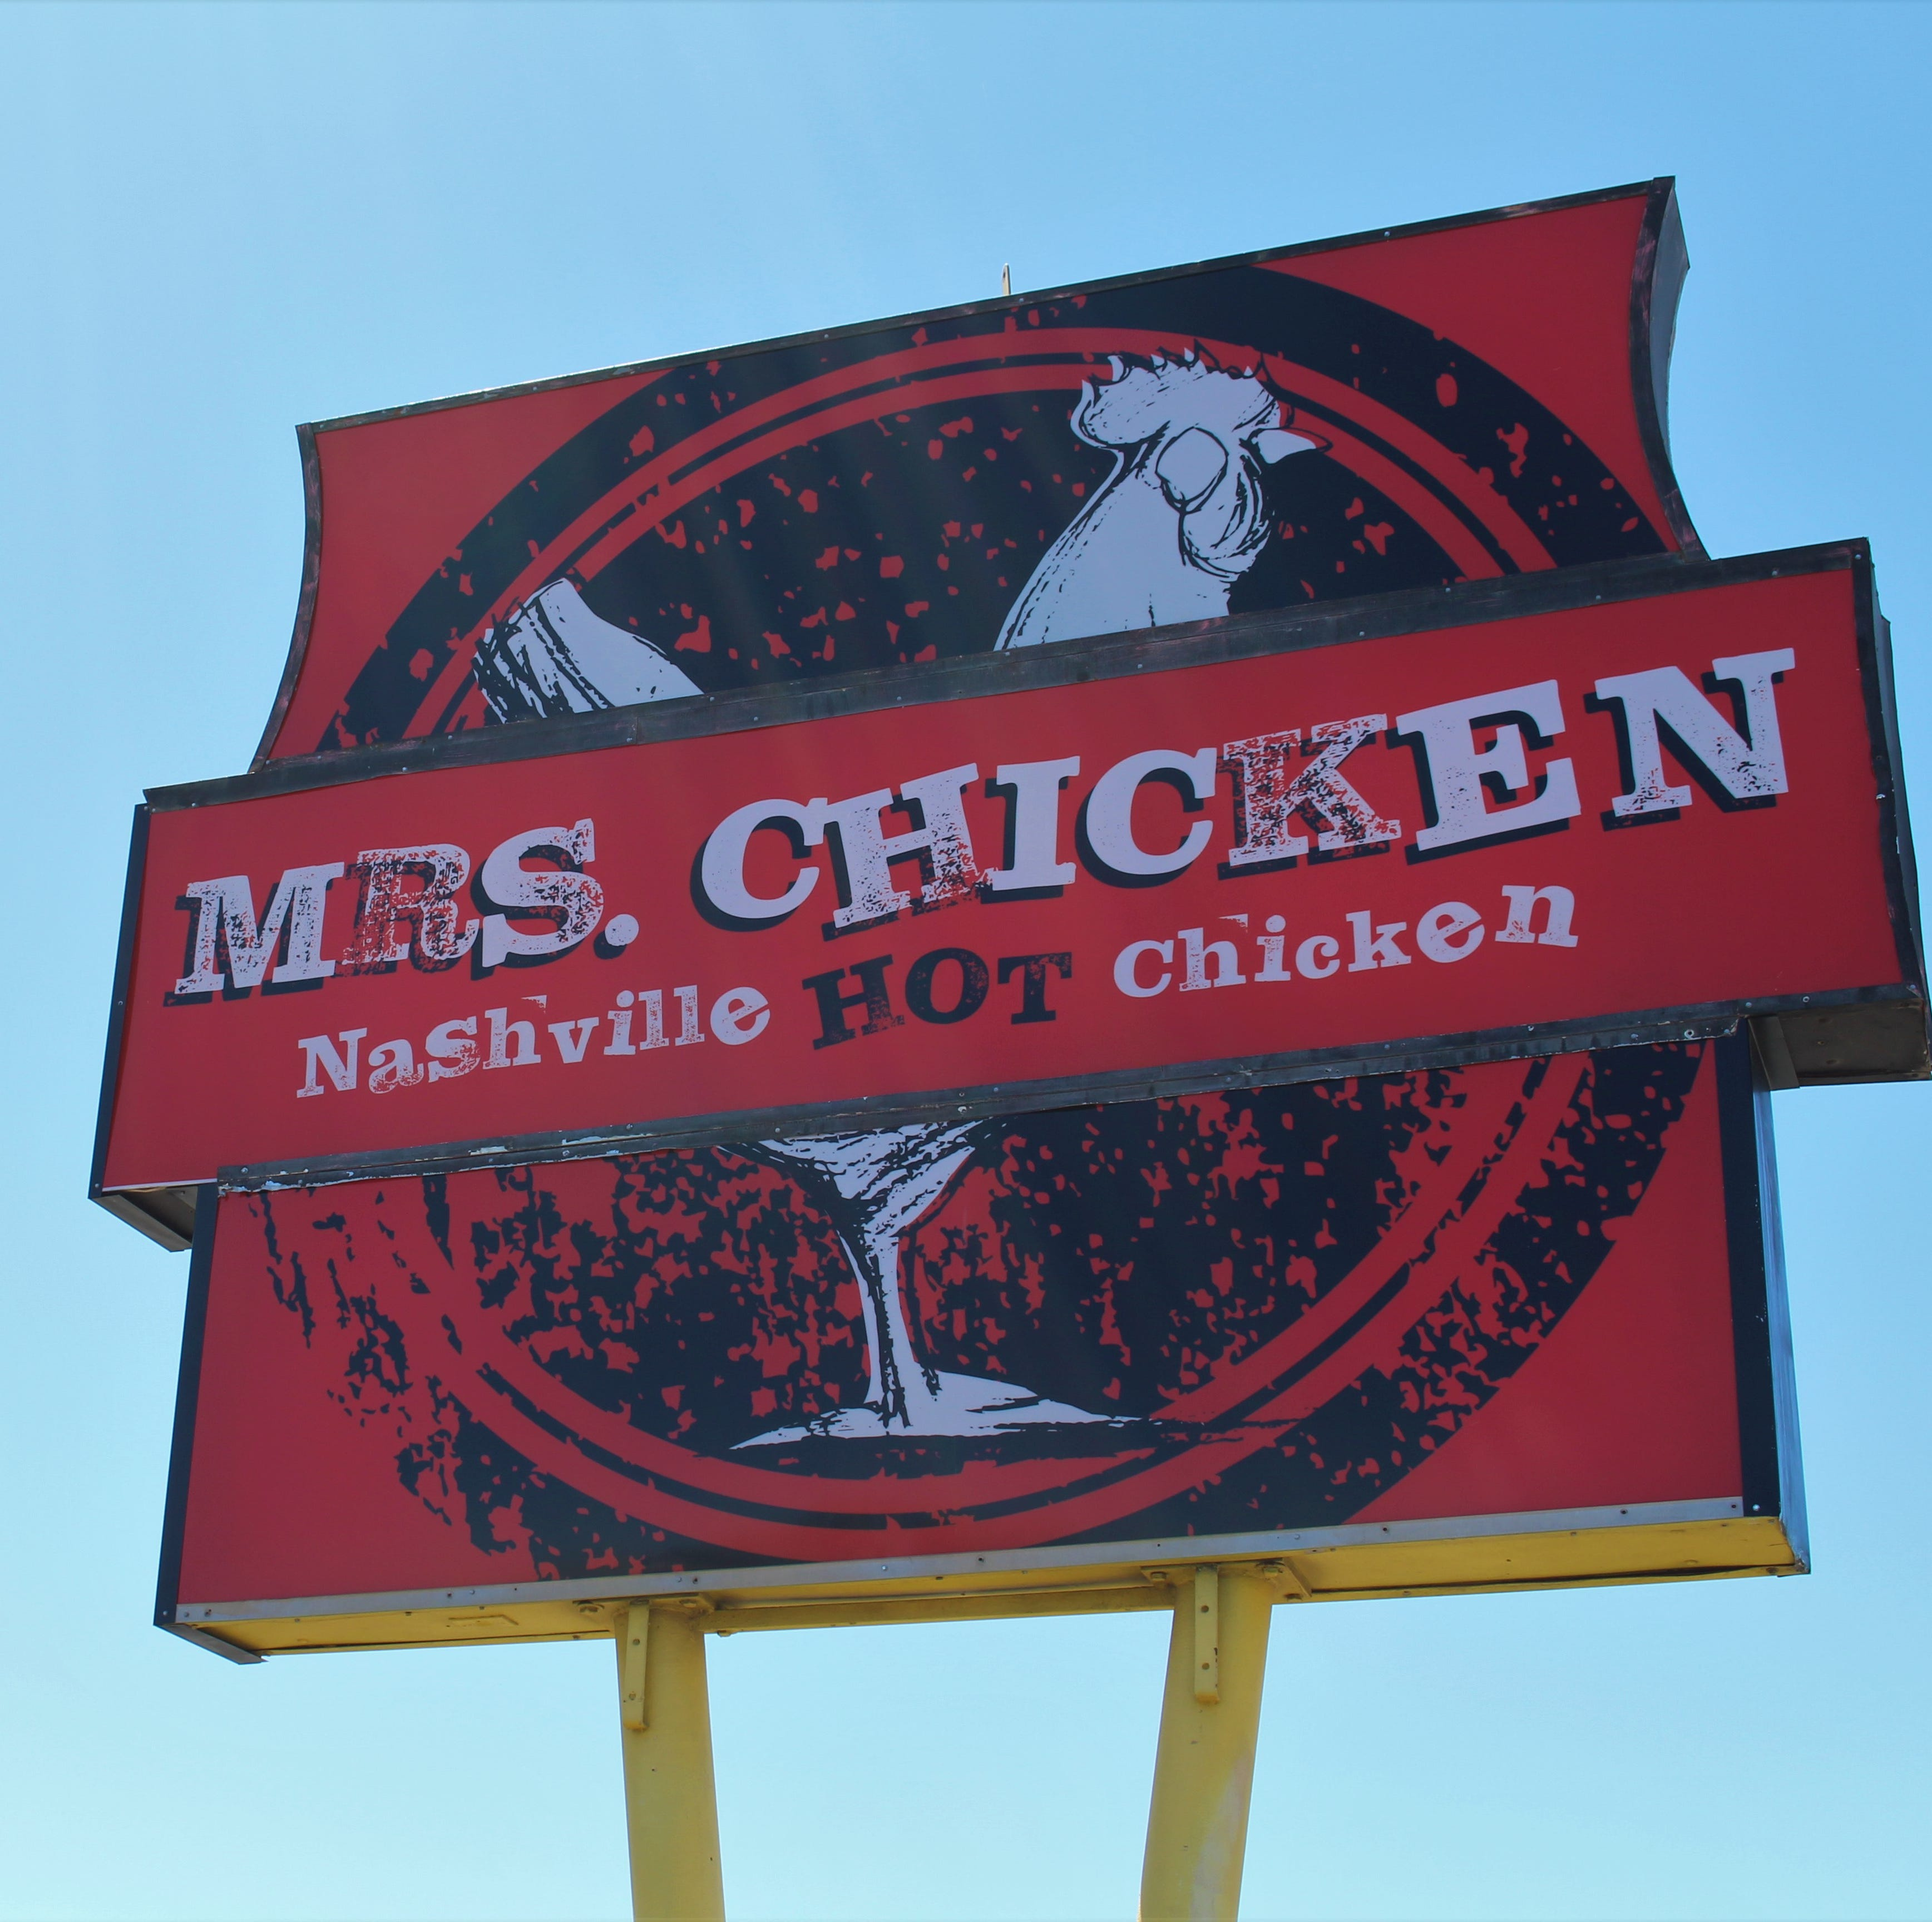 Mrs. Chicken is finally open. Here's a look at the Nashville-style hot chicken restaurant's menu